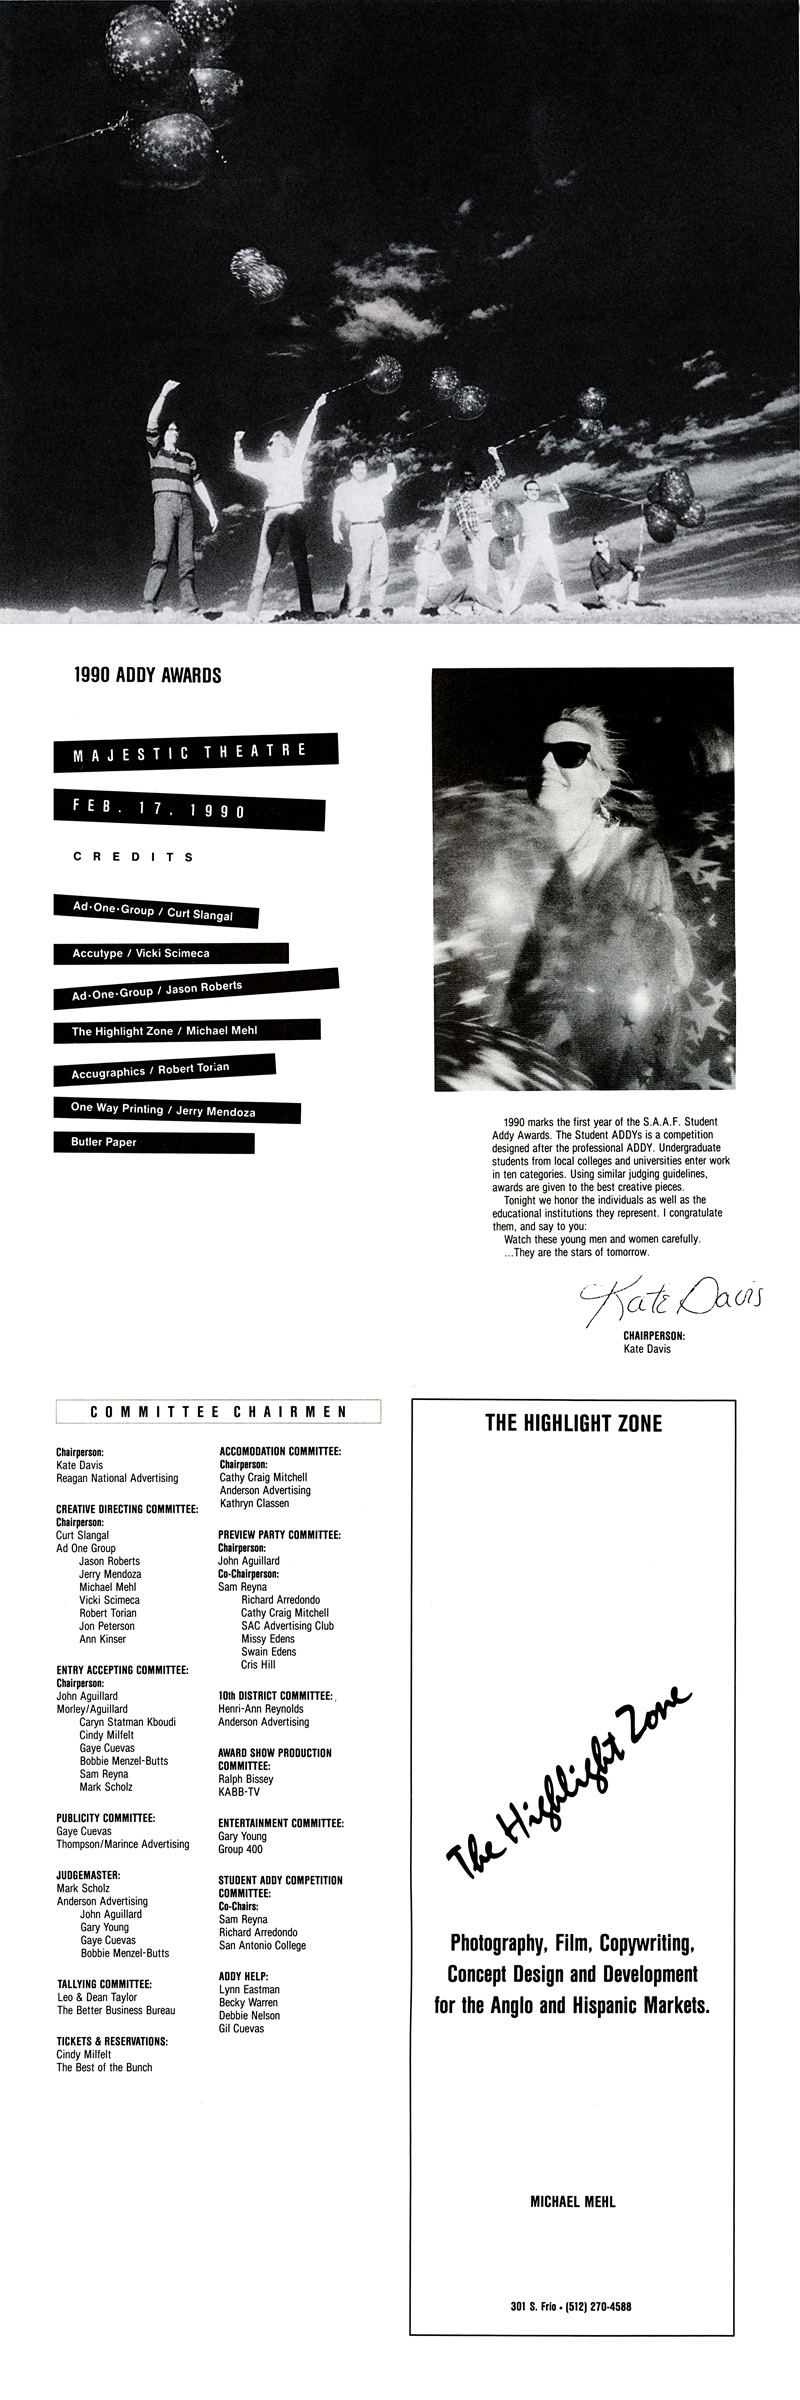 1990_Michael-Mehl_The-Highlight-Zone_San-Antonio-Advertising-Federation-1990-ADDY-Awards_Program